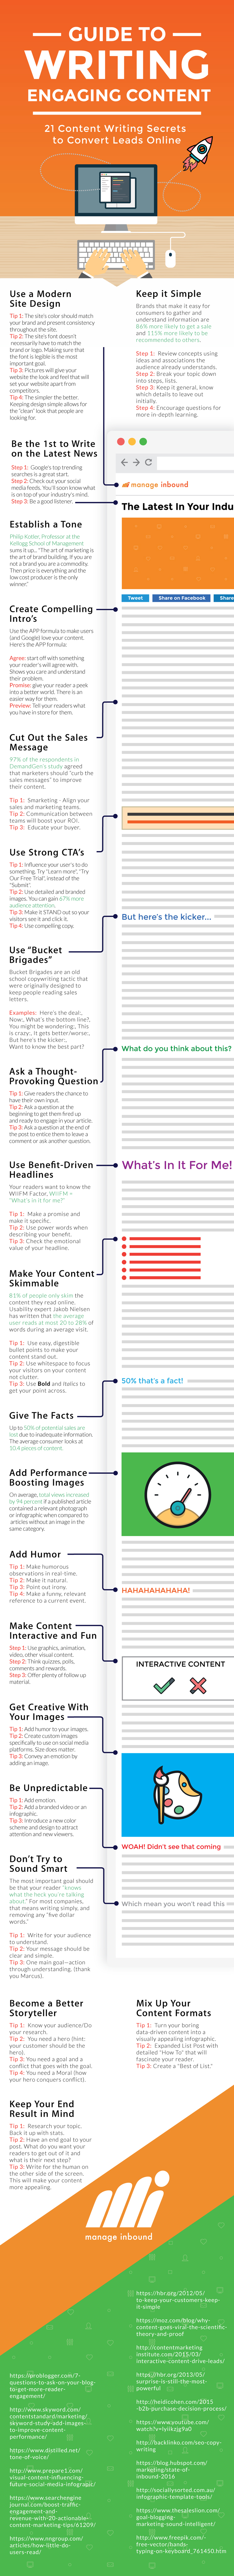 Infographic outlines tips to improve content writing